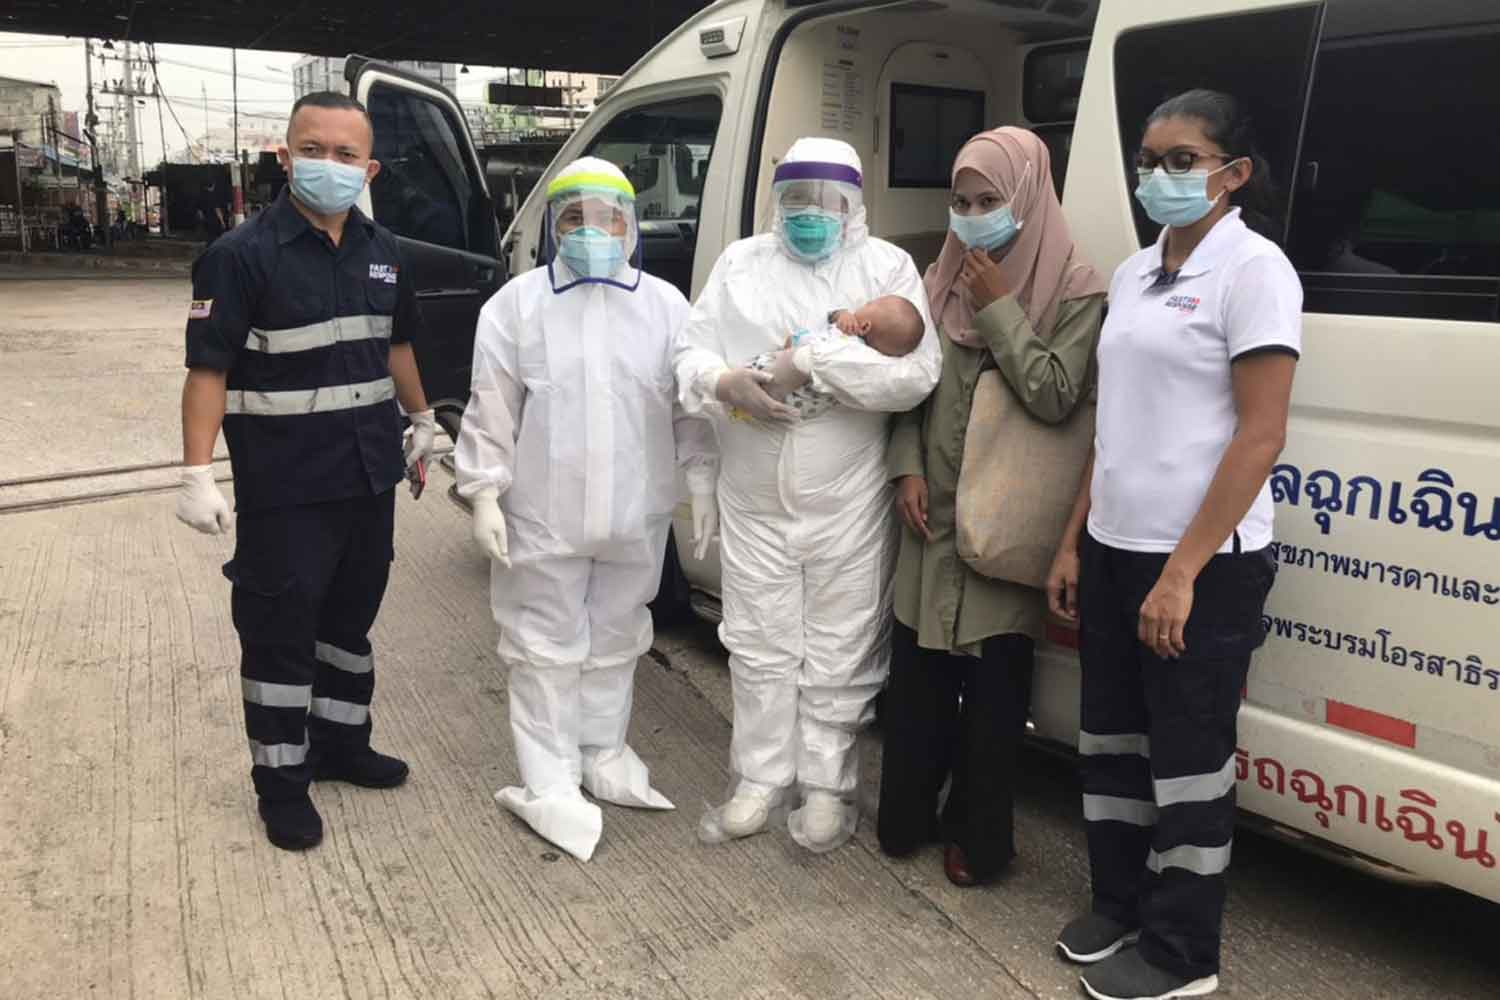 Nurahaleesa Jeh-awae, 18, second right, with health officials, one holding her baby, at the Sadao border crossing in Songkhla province on Thursday morning. (Photo: Abdullah Benjakat)